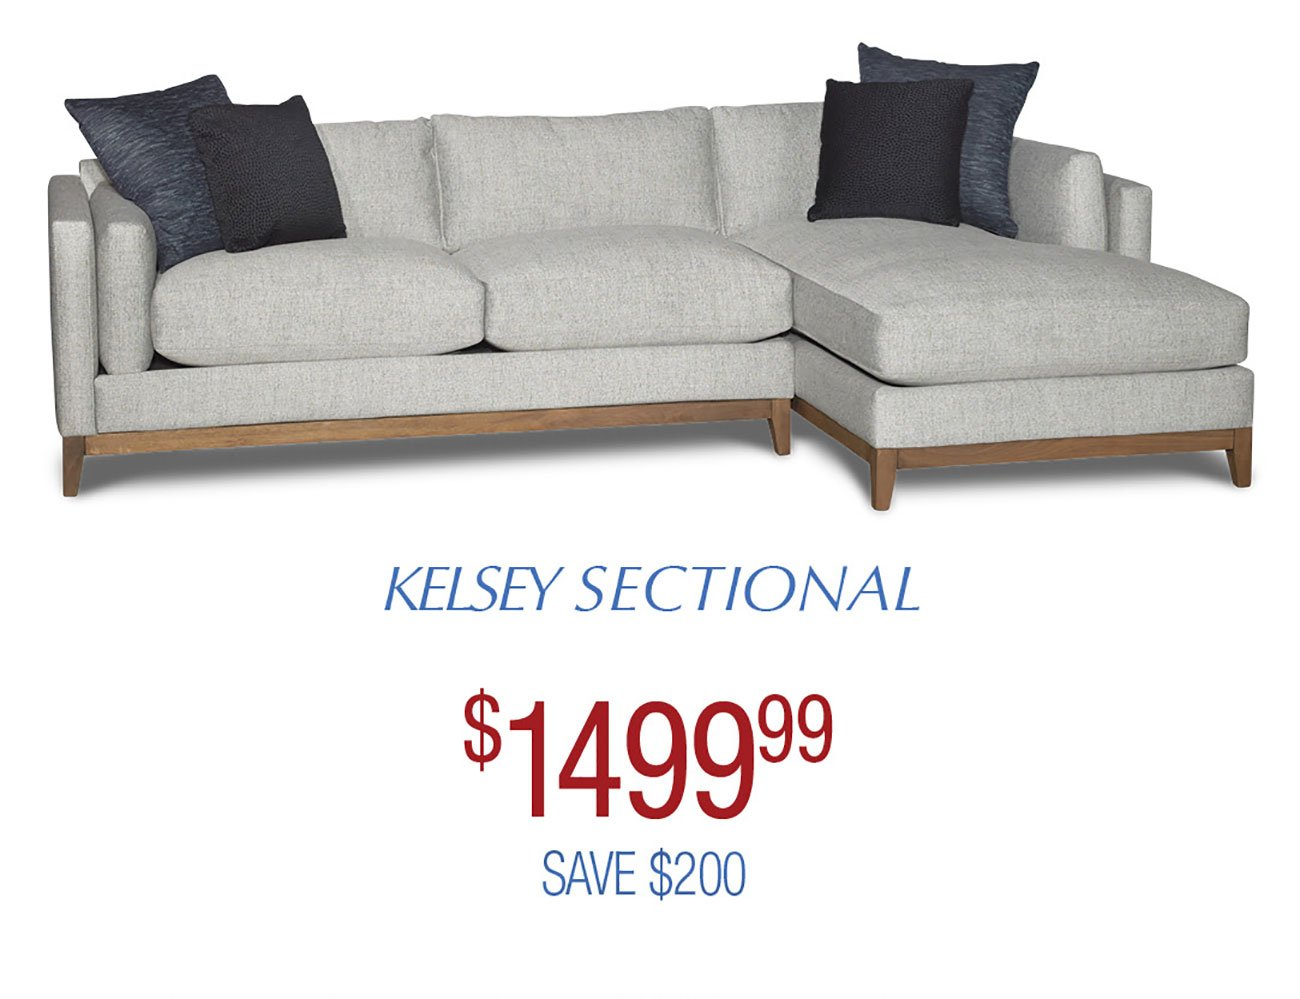 Kelsey-Sectional-White